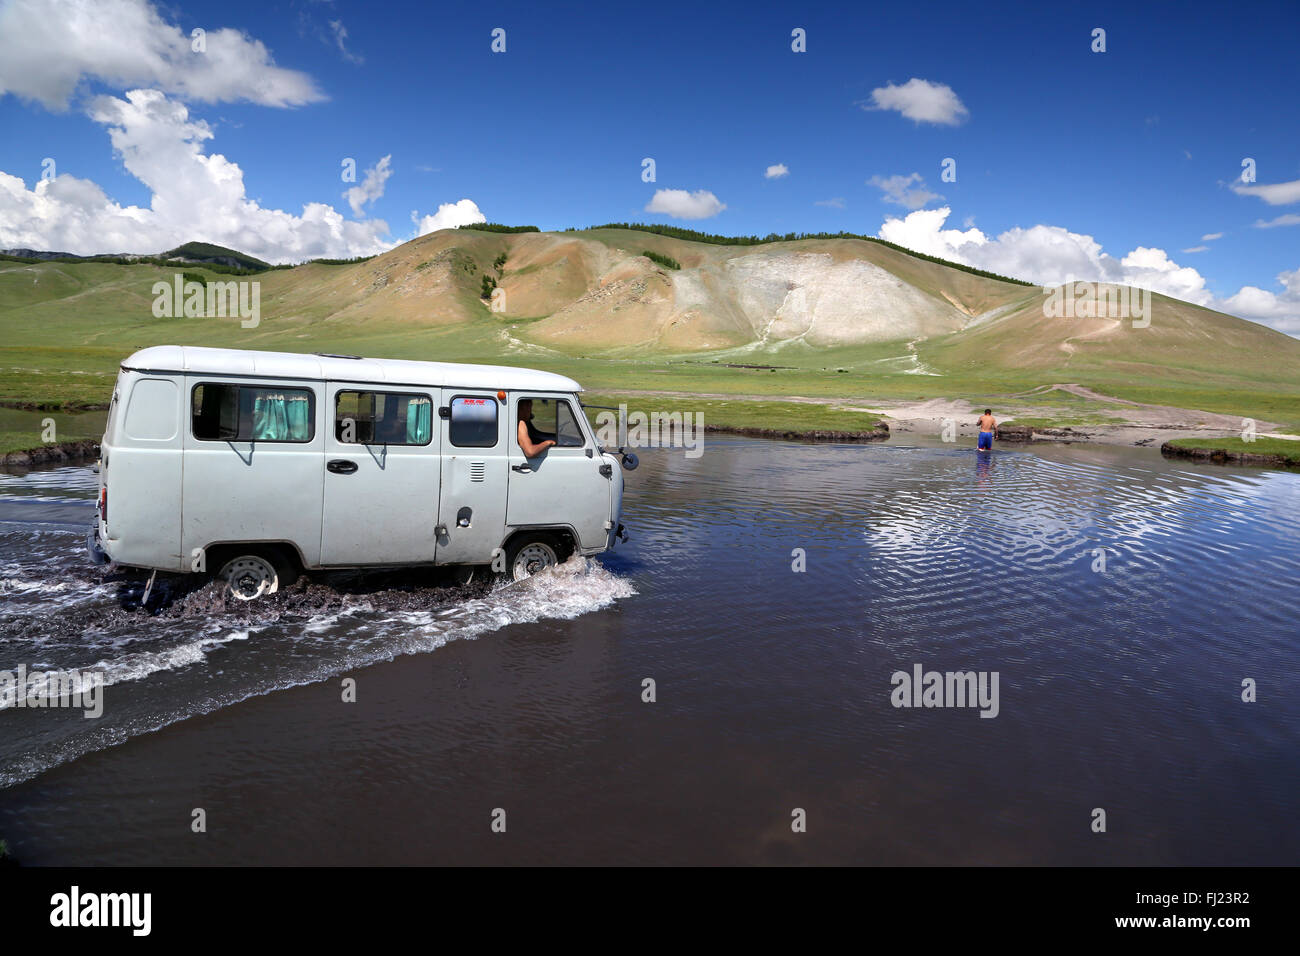 Old Russian van travelling in Mongolia through a river in the middle of nowhere - Stock Image